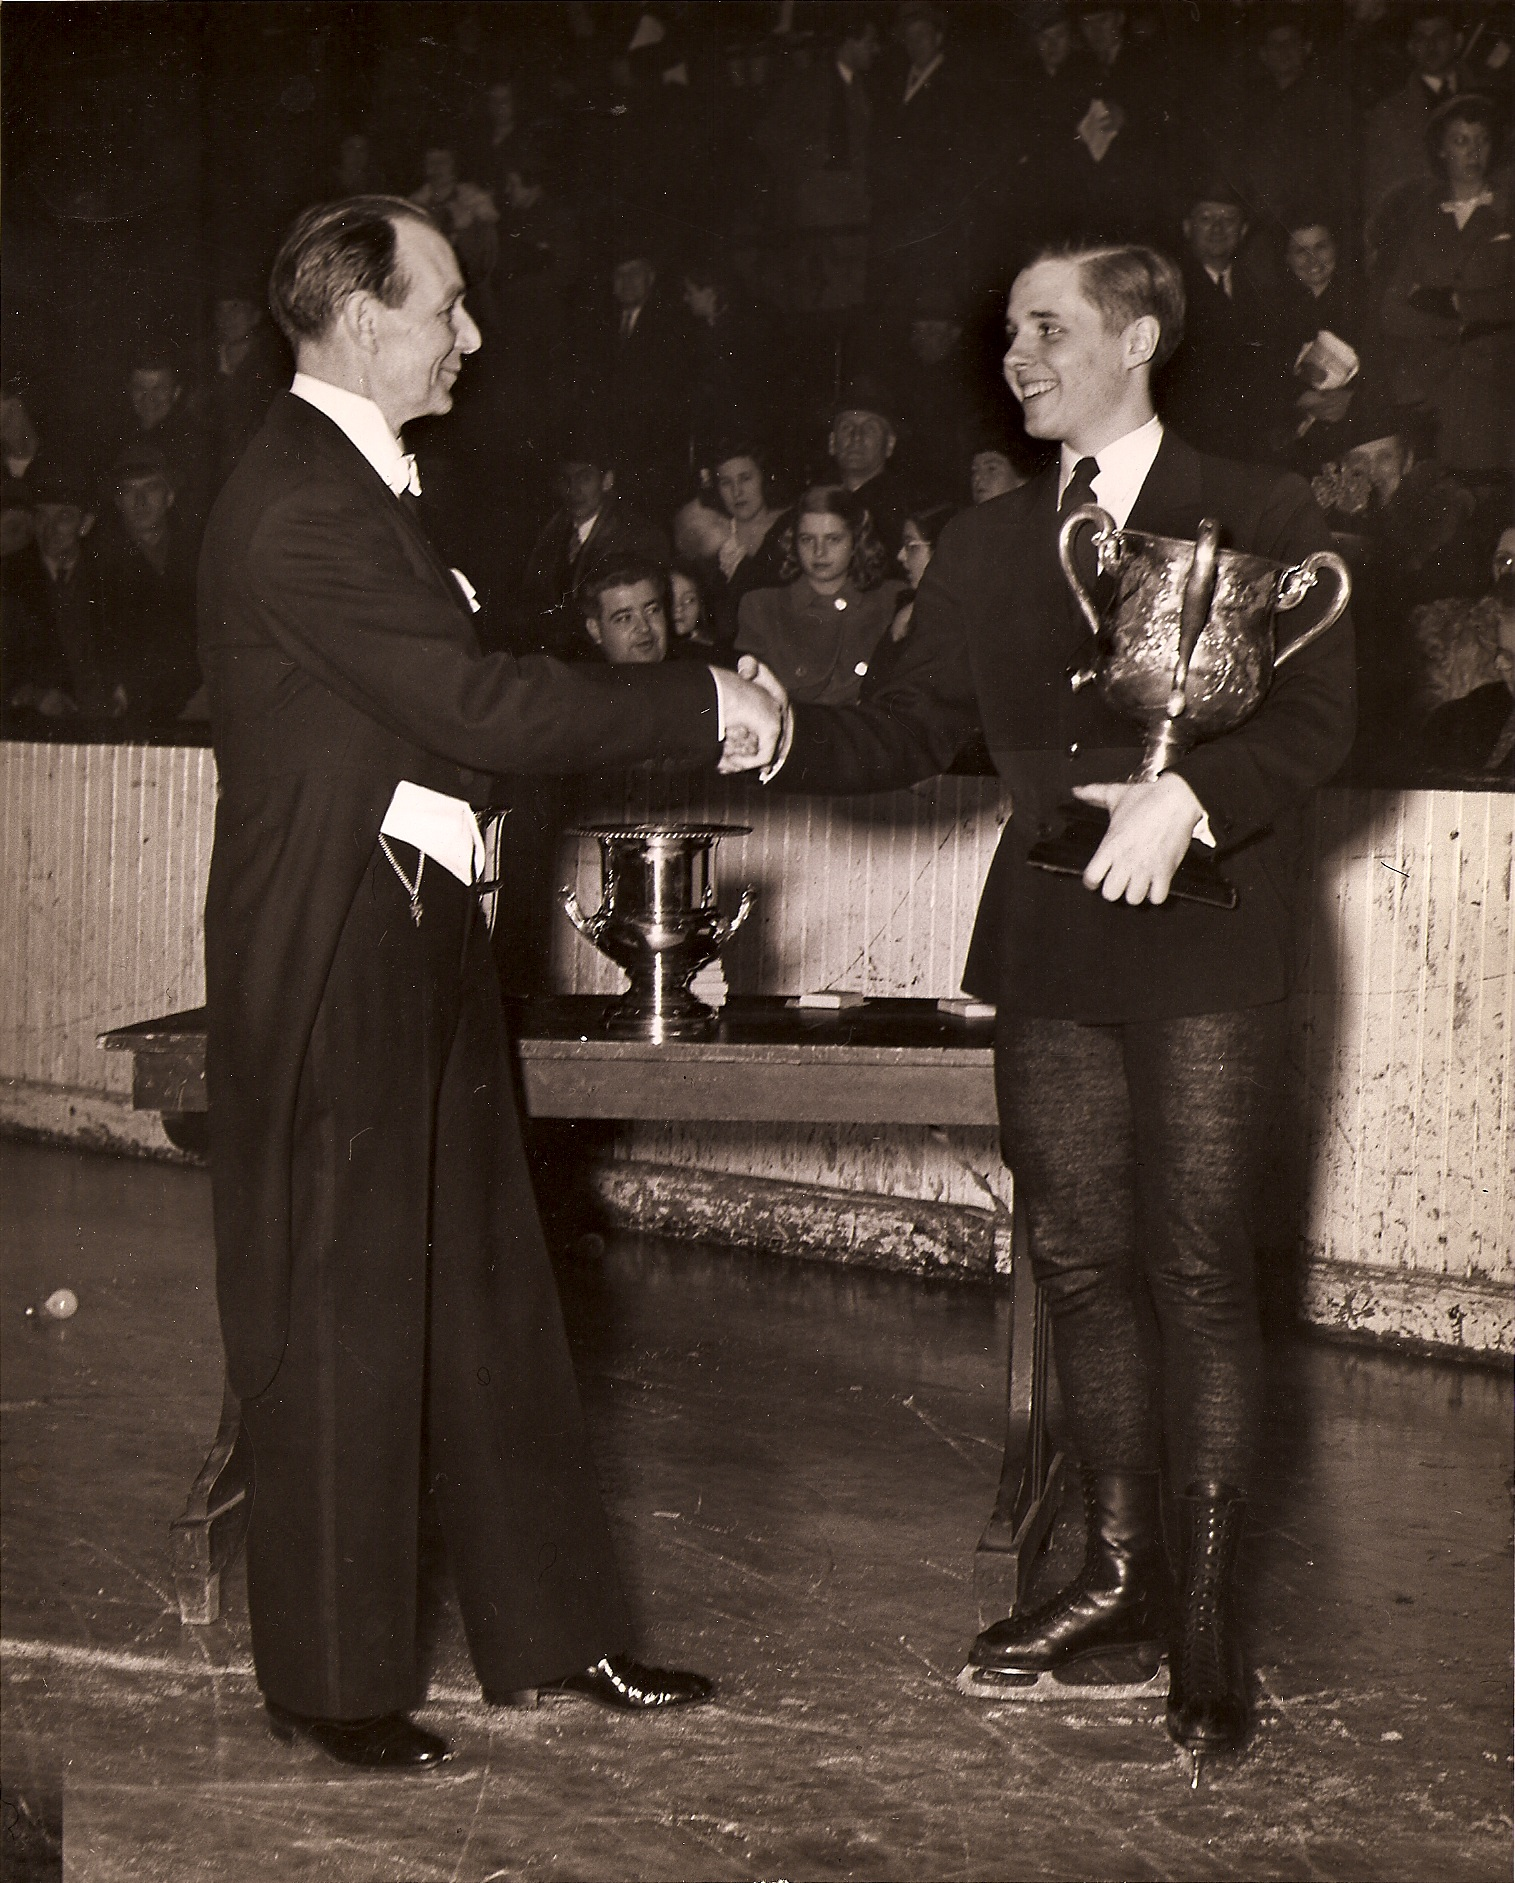 1943 US junior men's champion Eddie LeMaire was an accomplished singles and pairs skater, and one of the sport's most distinguished judges. He died aboard Sabena Flight 548 to Belgium.